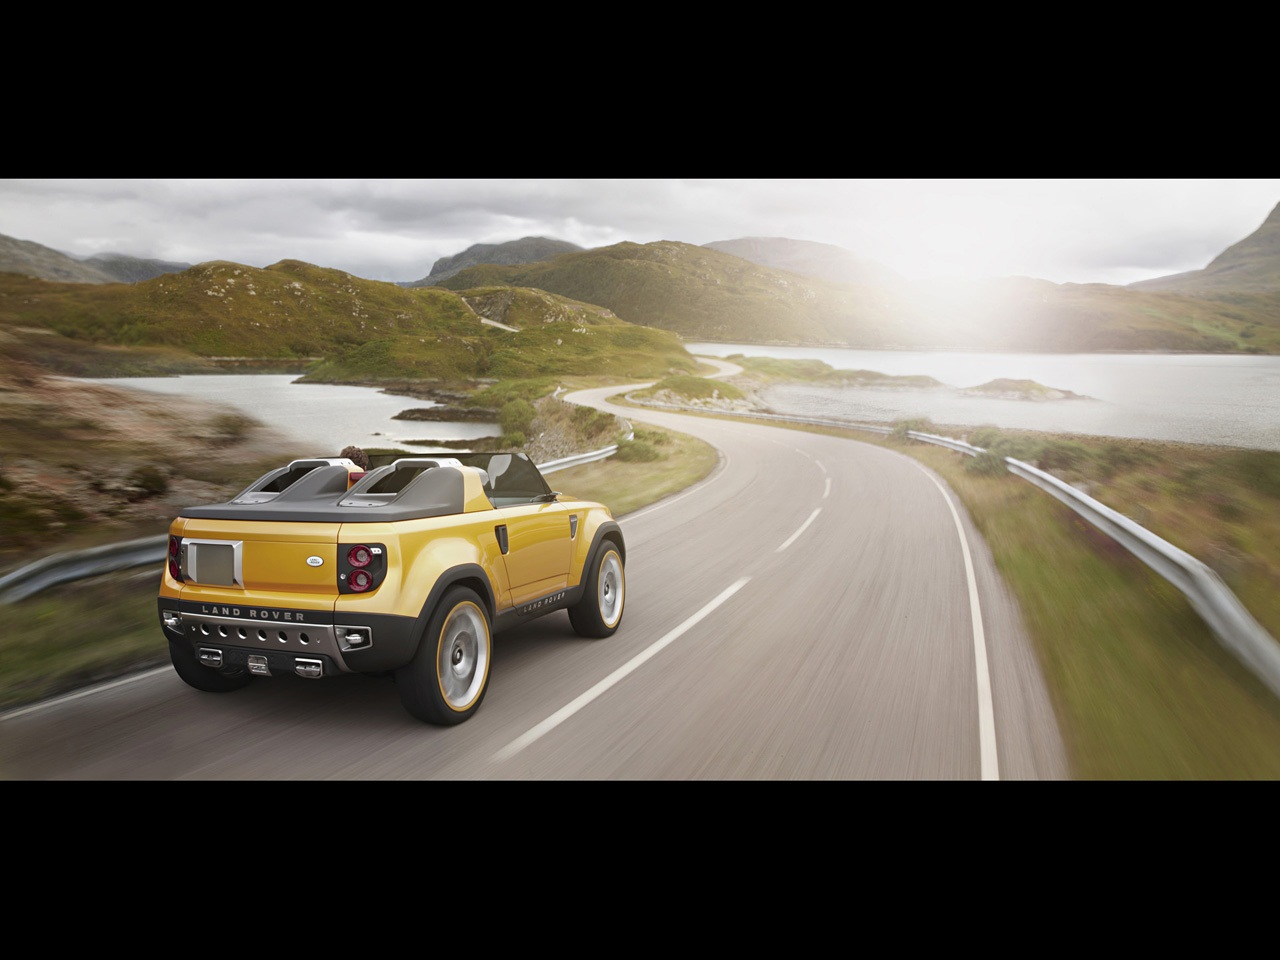 2011 land rover dc100 concept side 2 1280x960 wallpaper -  2011 Land Rover Dc100 Sport Concept Wallpapers